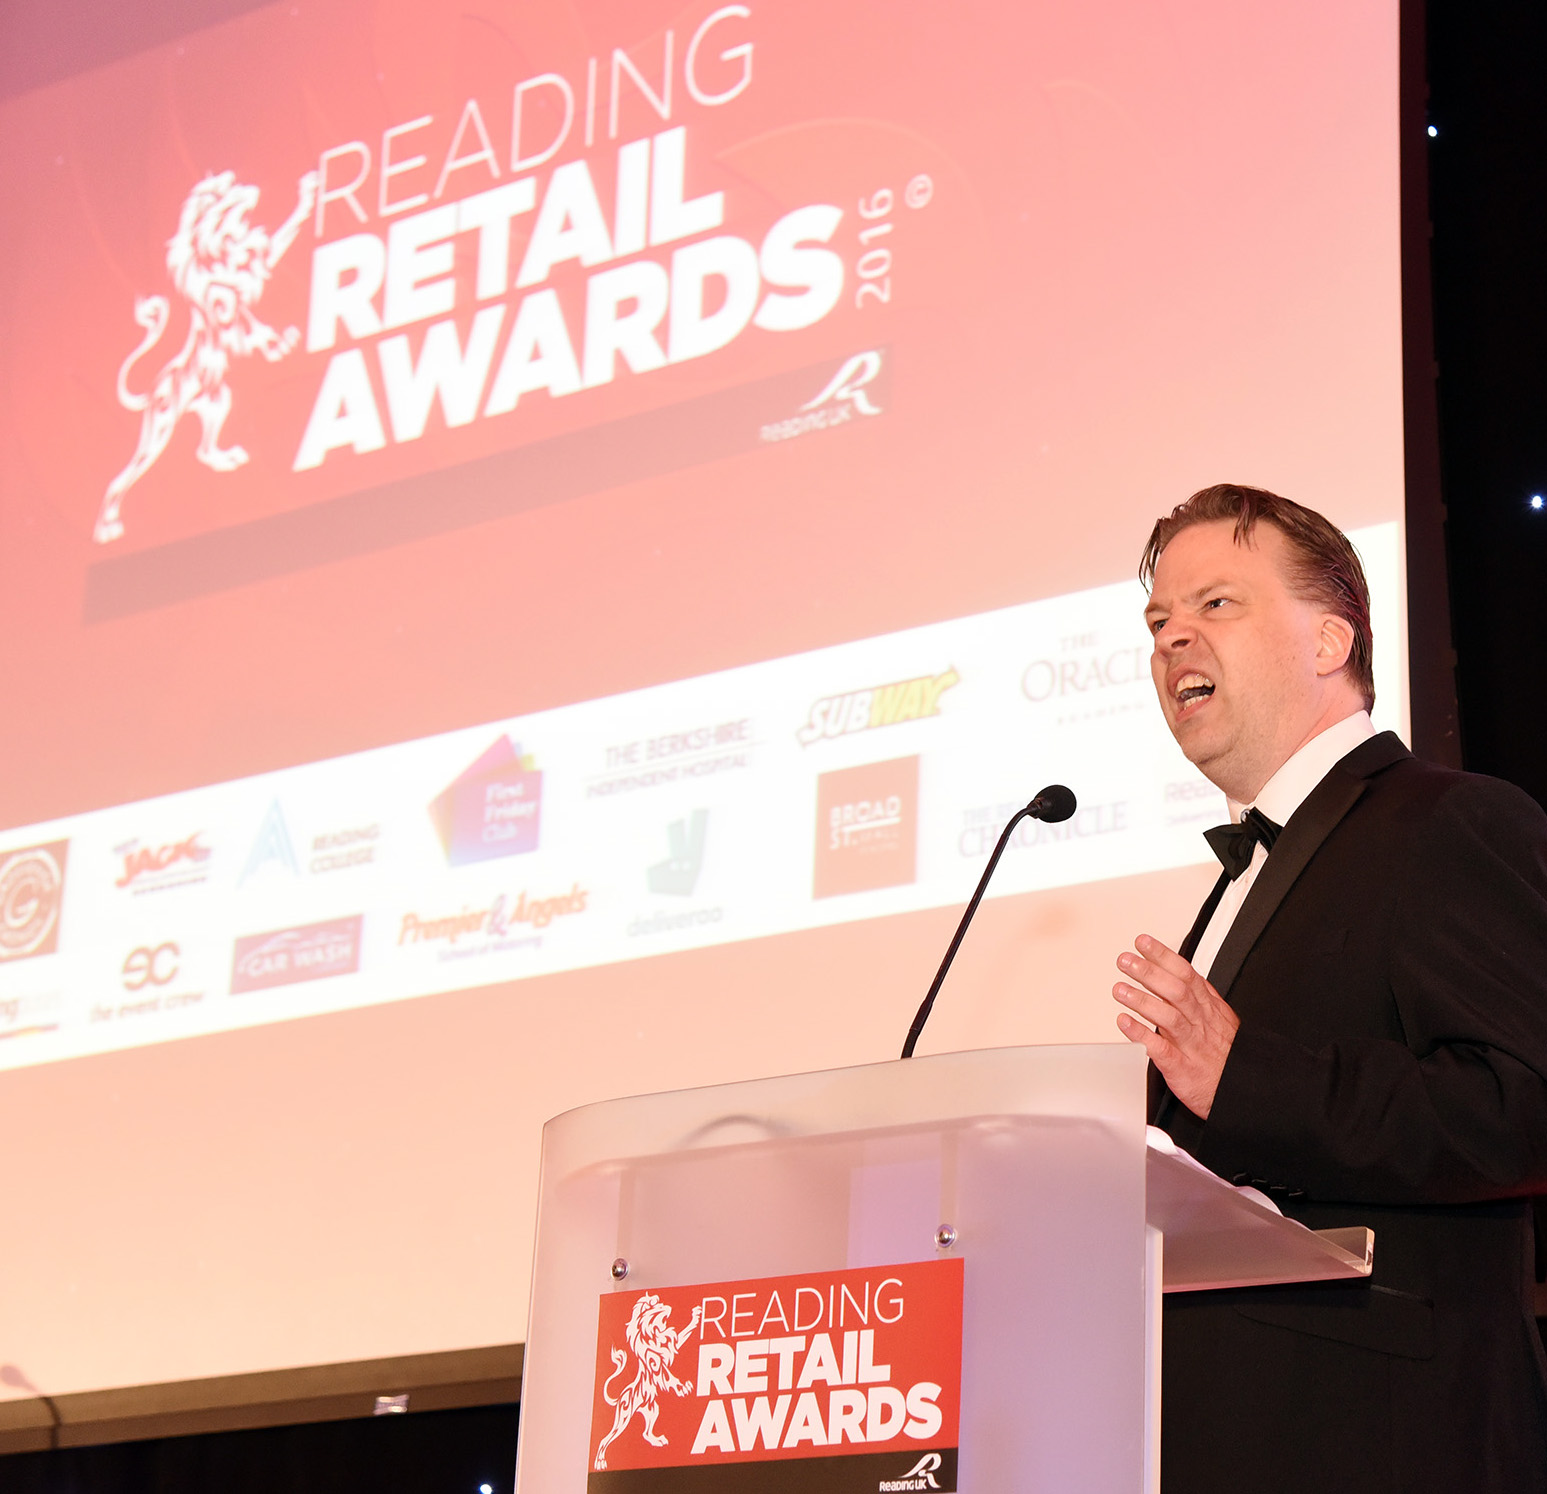 Reading Retail Awards roundup